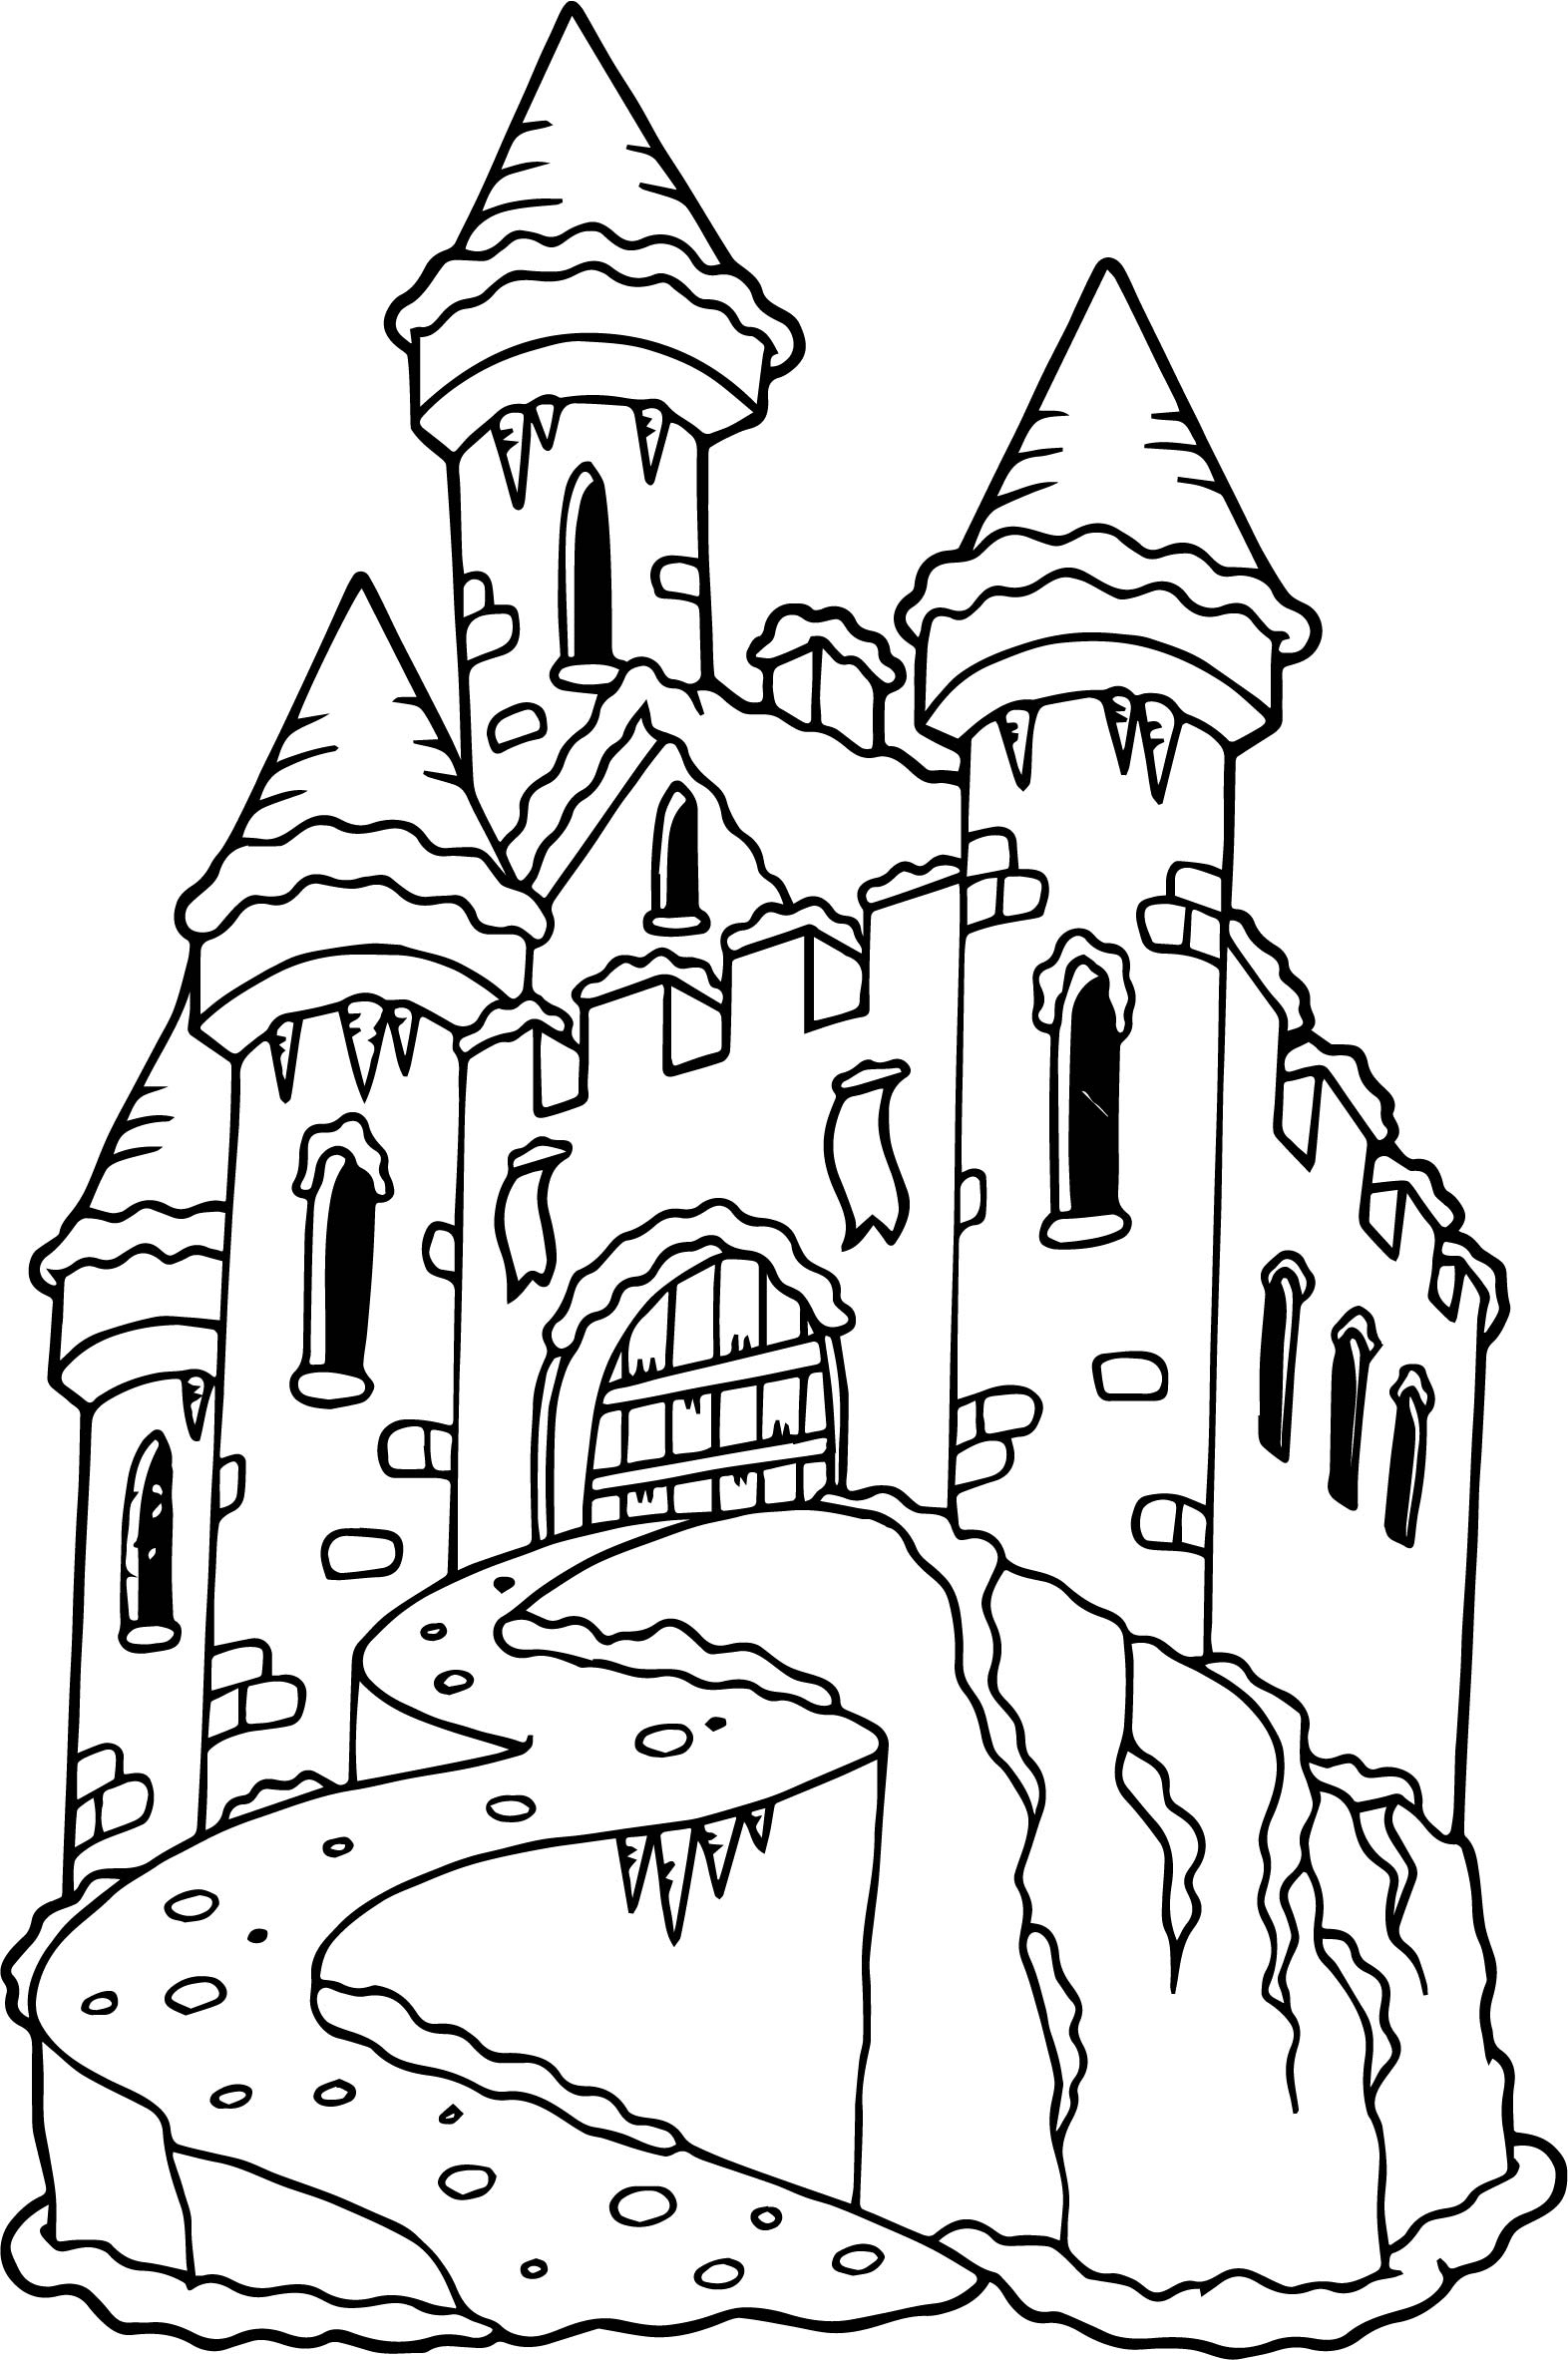 coloring pages of a castle castle coloring pages coloring pages to download and print of a castle pages coloring